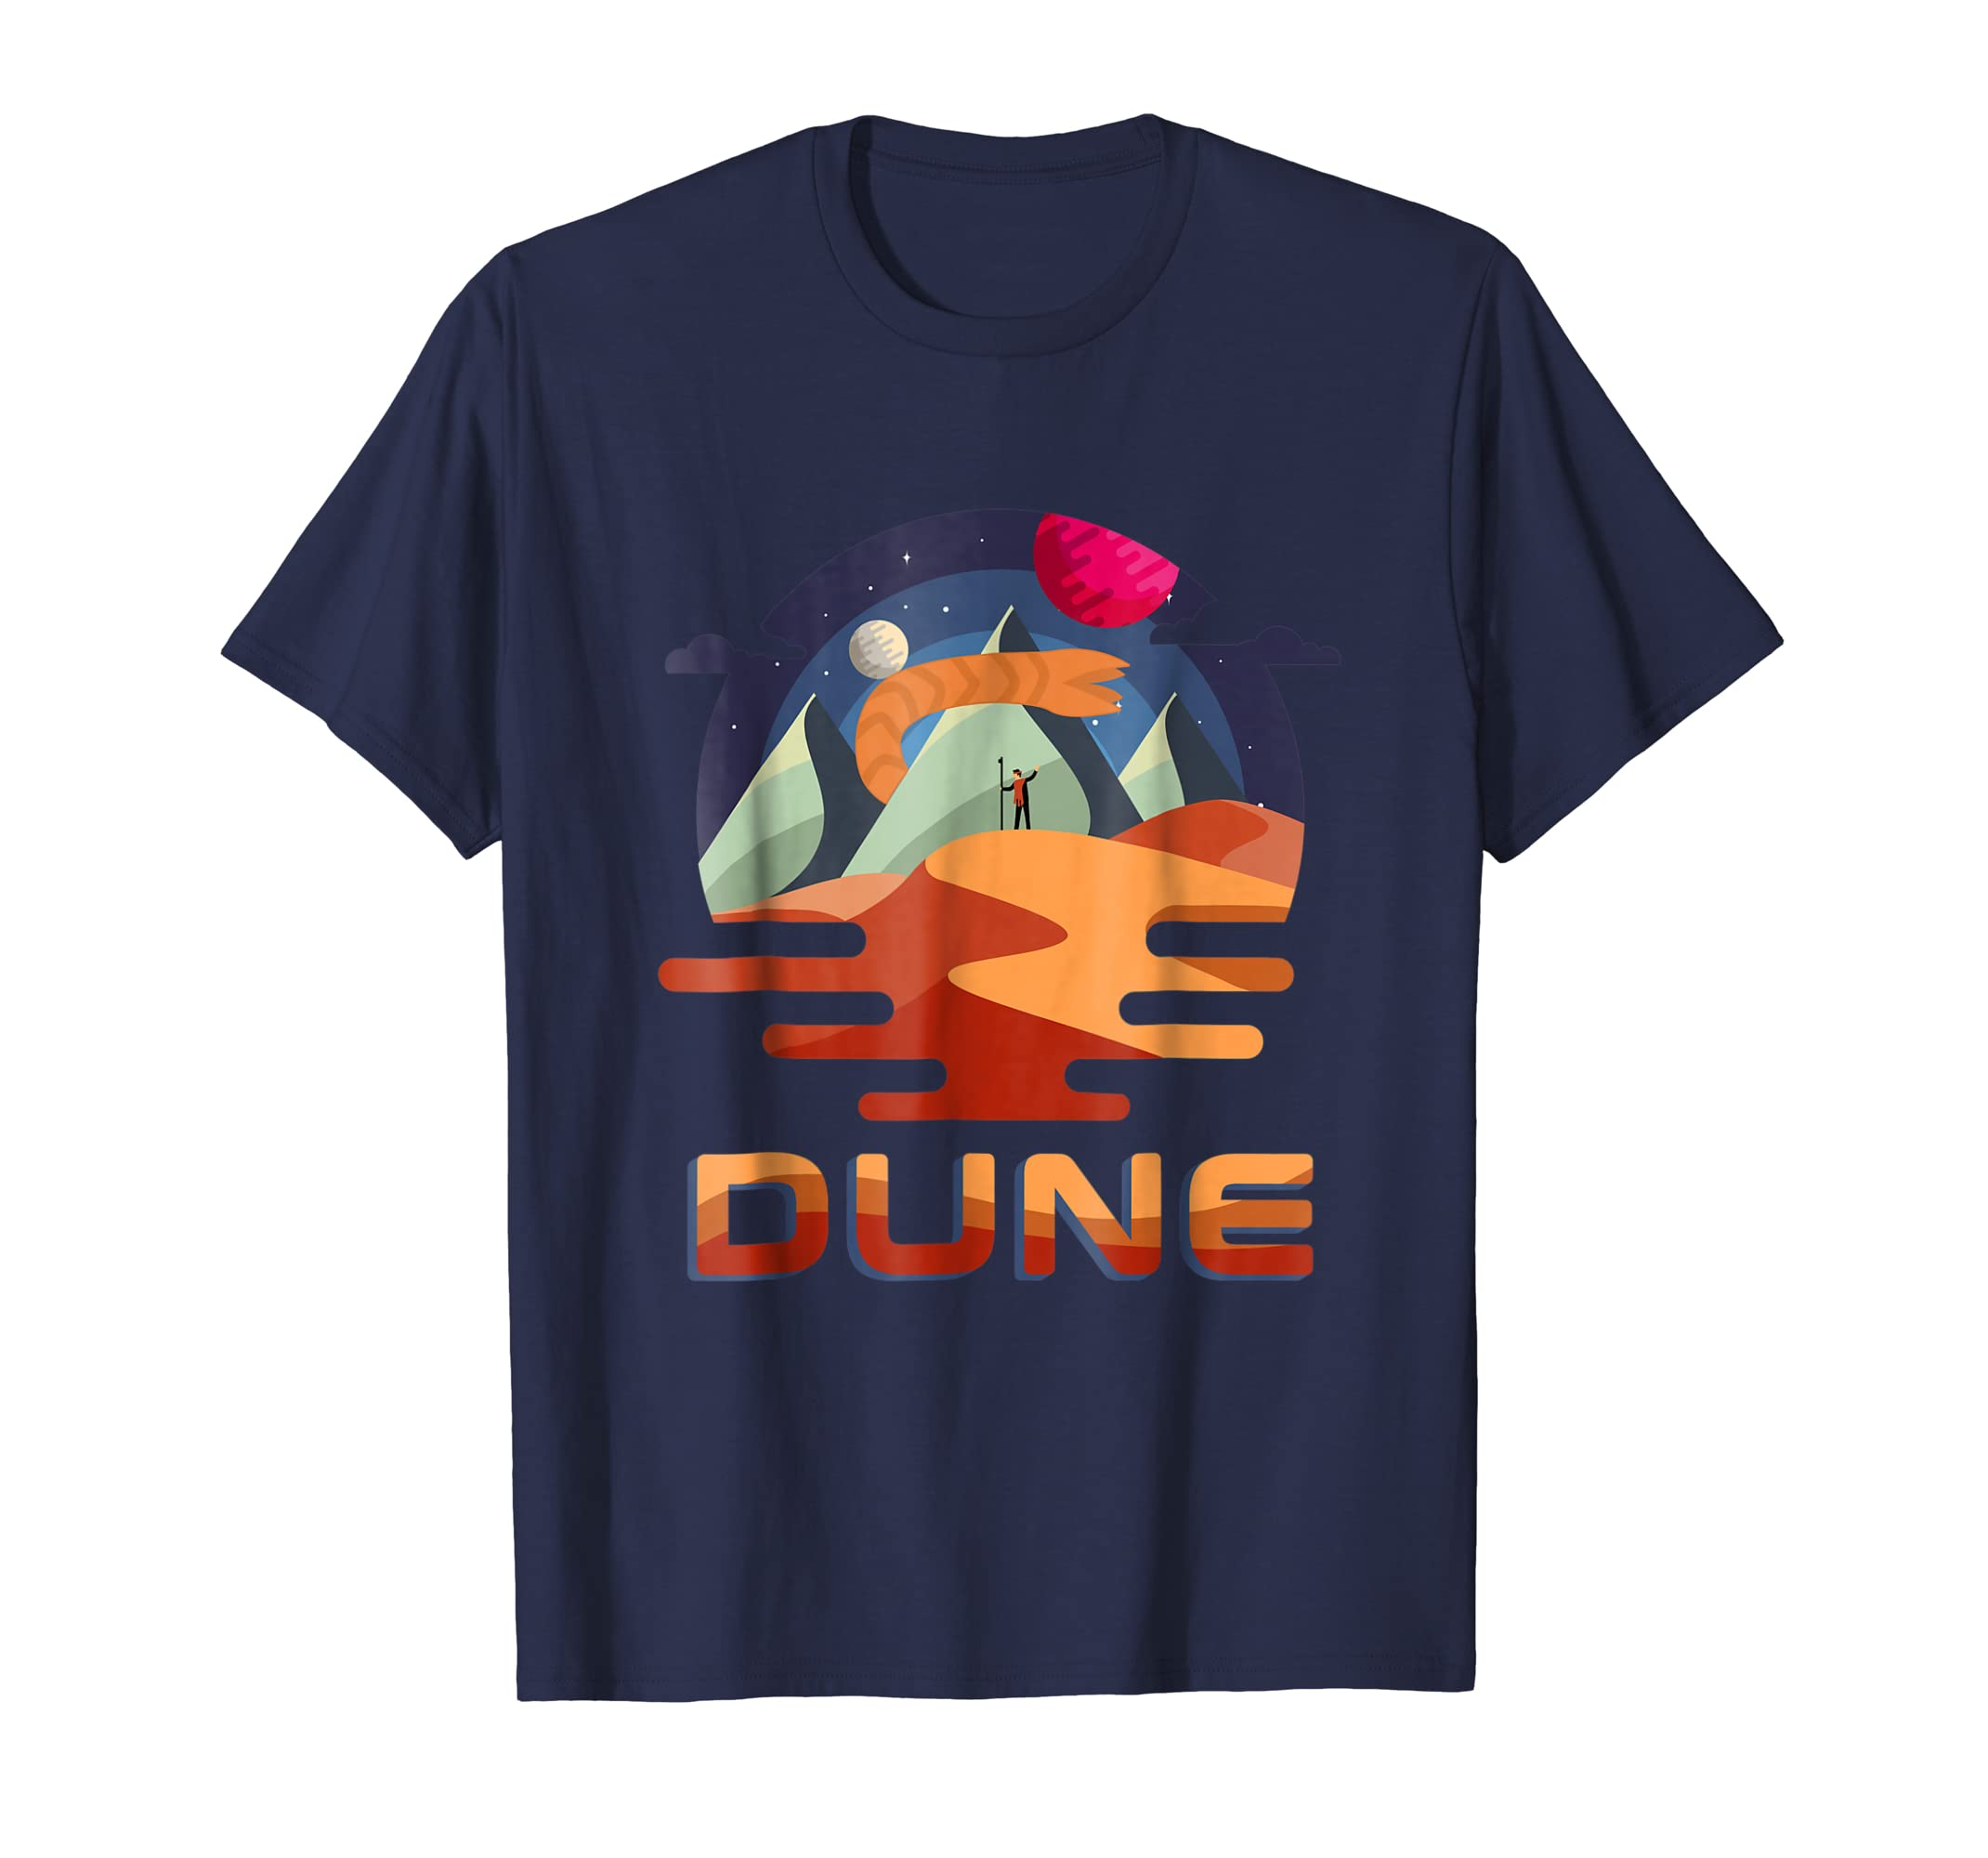 Dune Graphic Science Fiction Sci Fi Sand Work Arrakis Shirt-Teehay